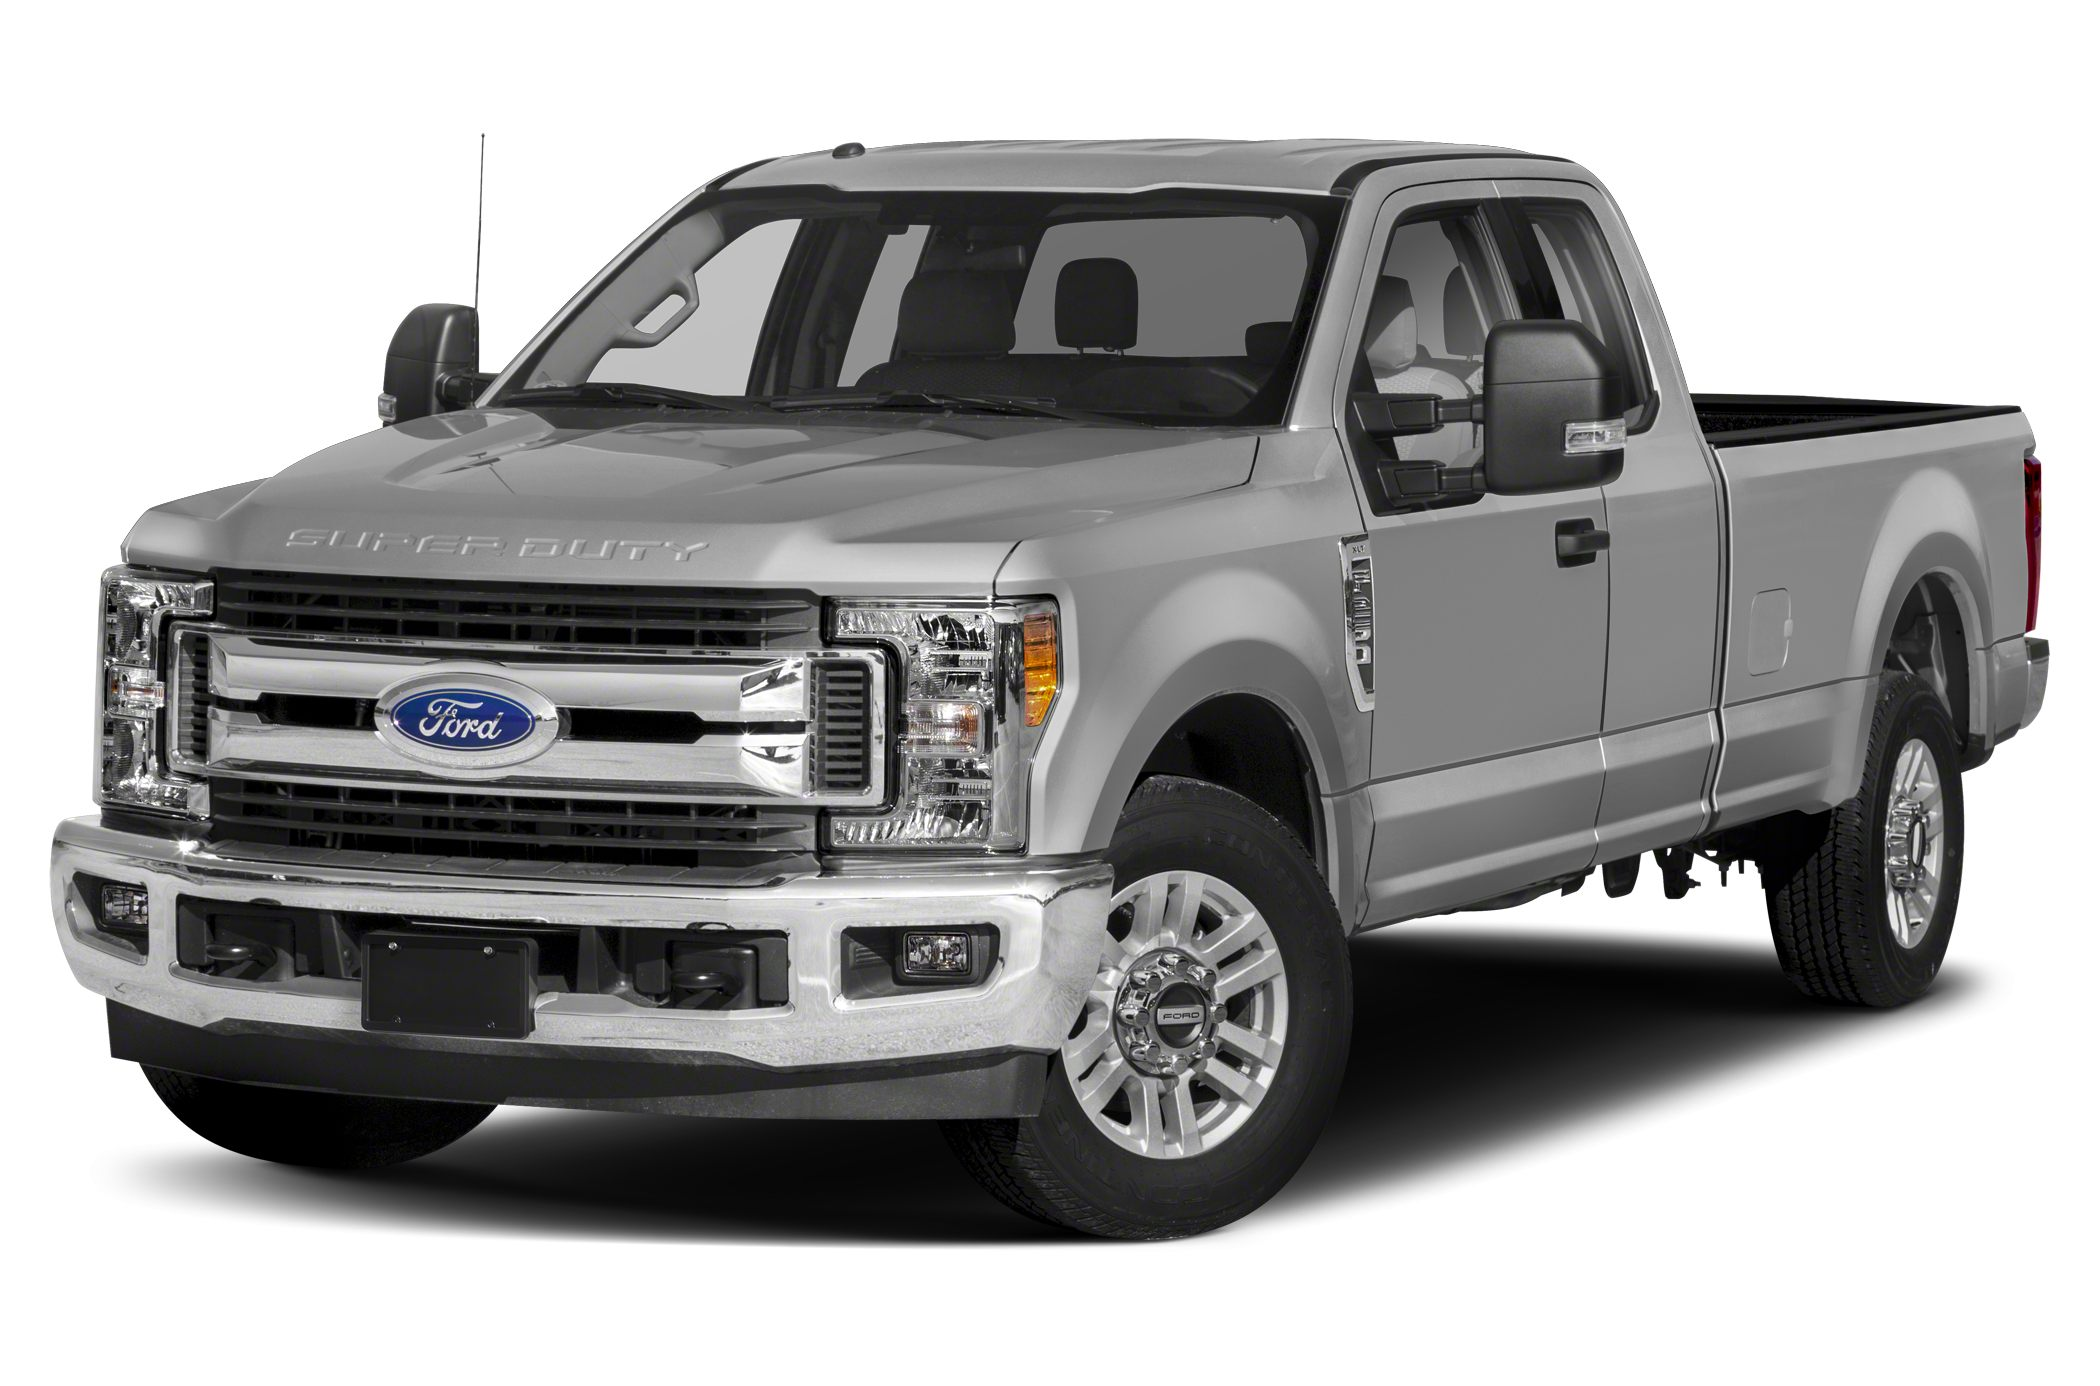 2000 Ford F350 Super Duty >> 2017 Ford F350 Reviews, Specs and Prices | Cars.com